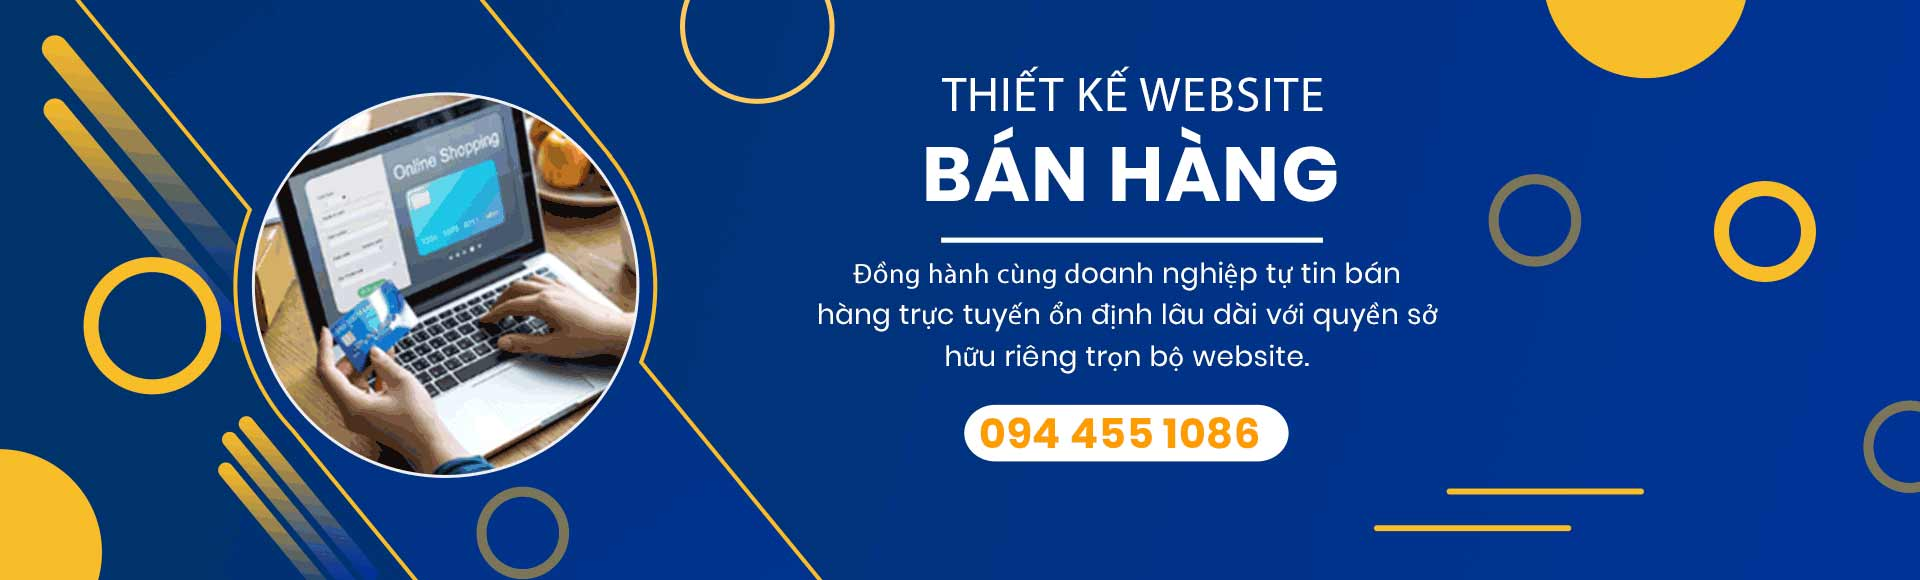 https://tmiweb.vn/thiet-ke-website-ban-hang/